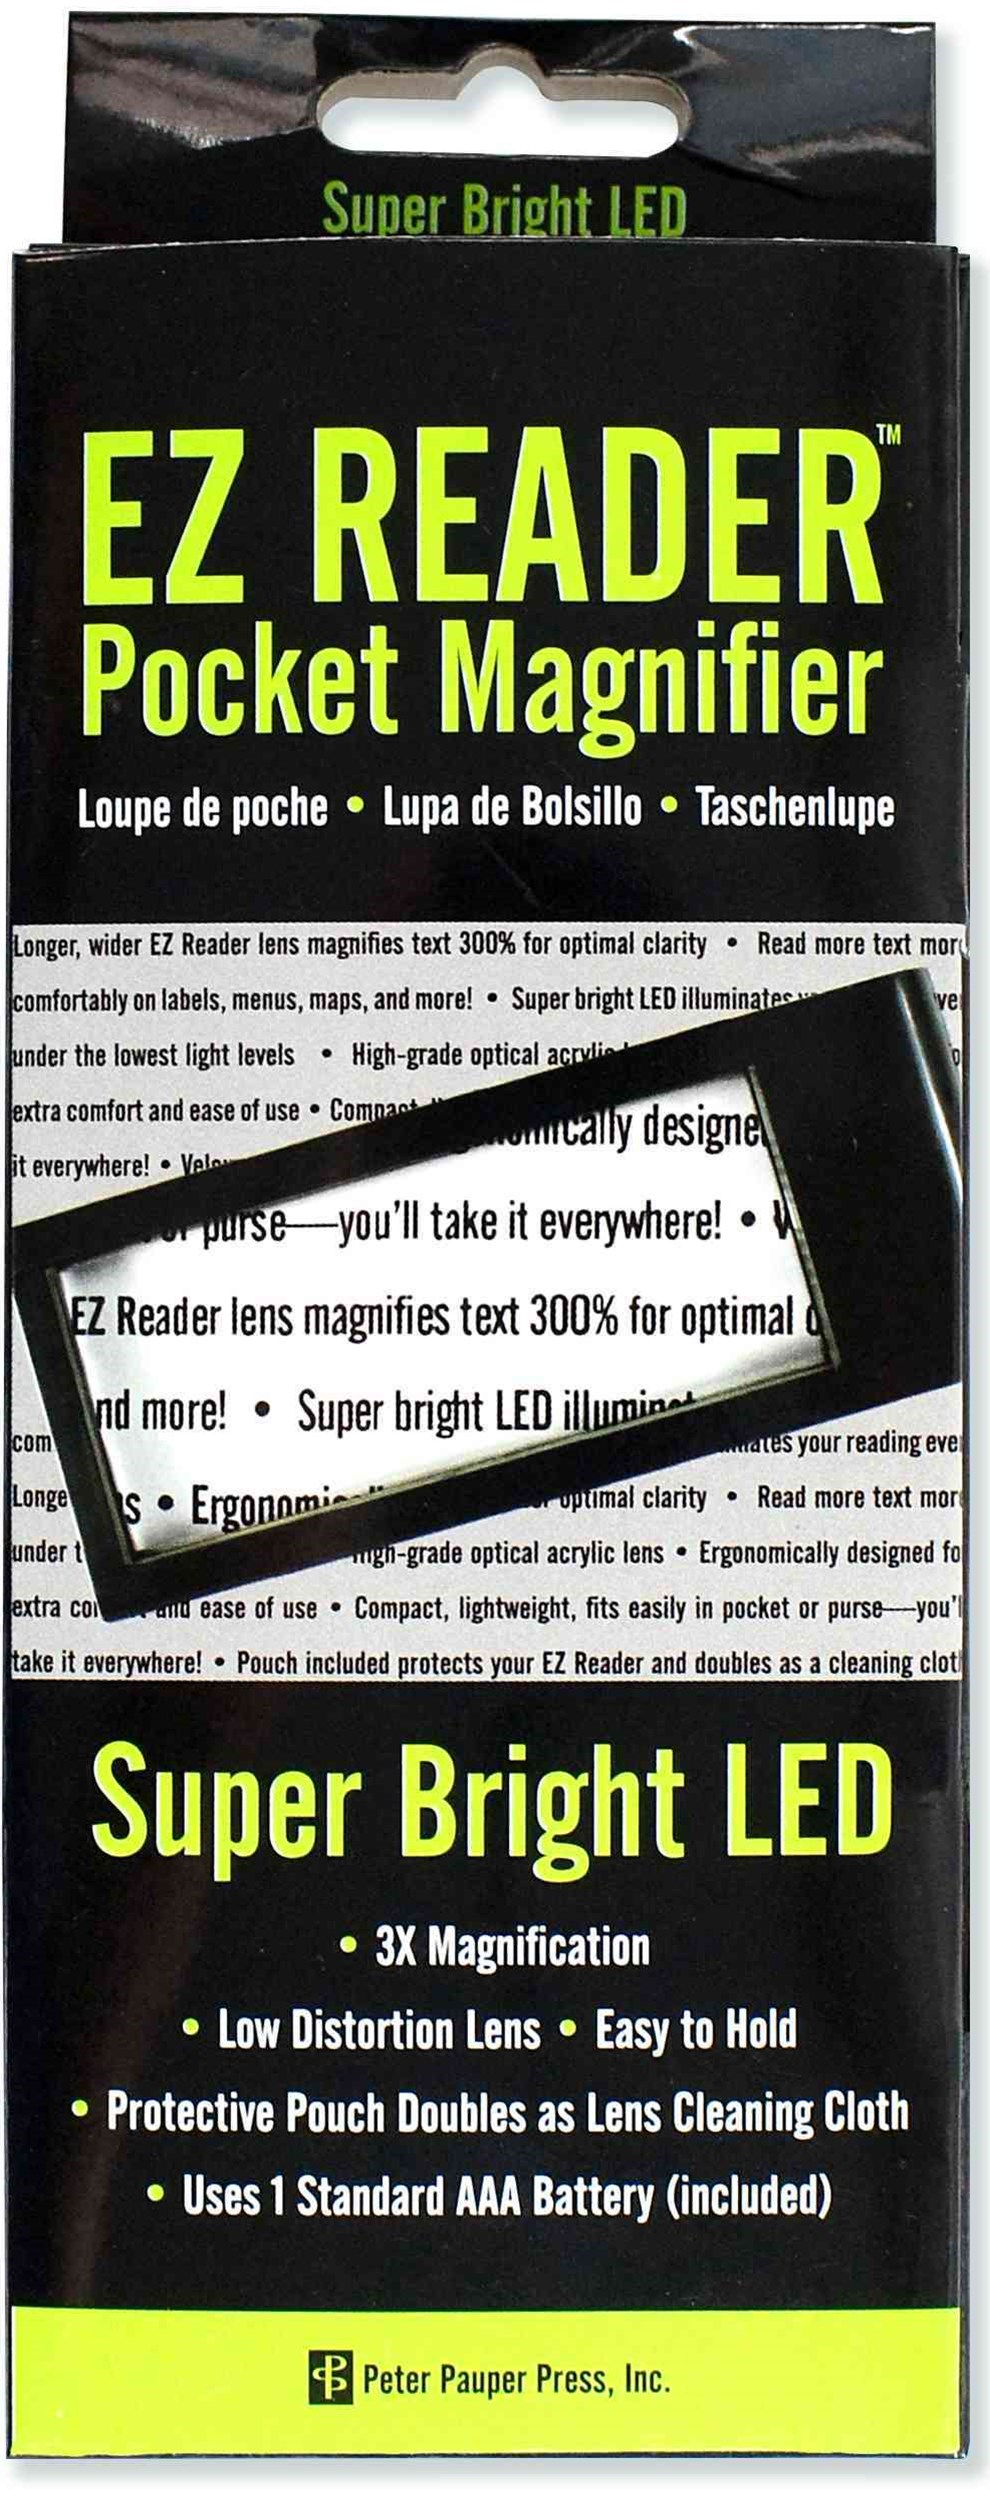 Ez Reader Led Pocket Magnifier